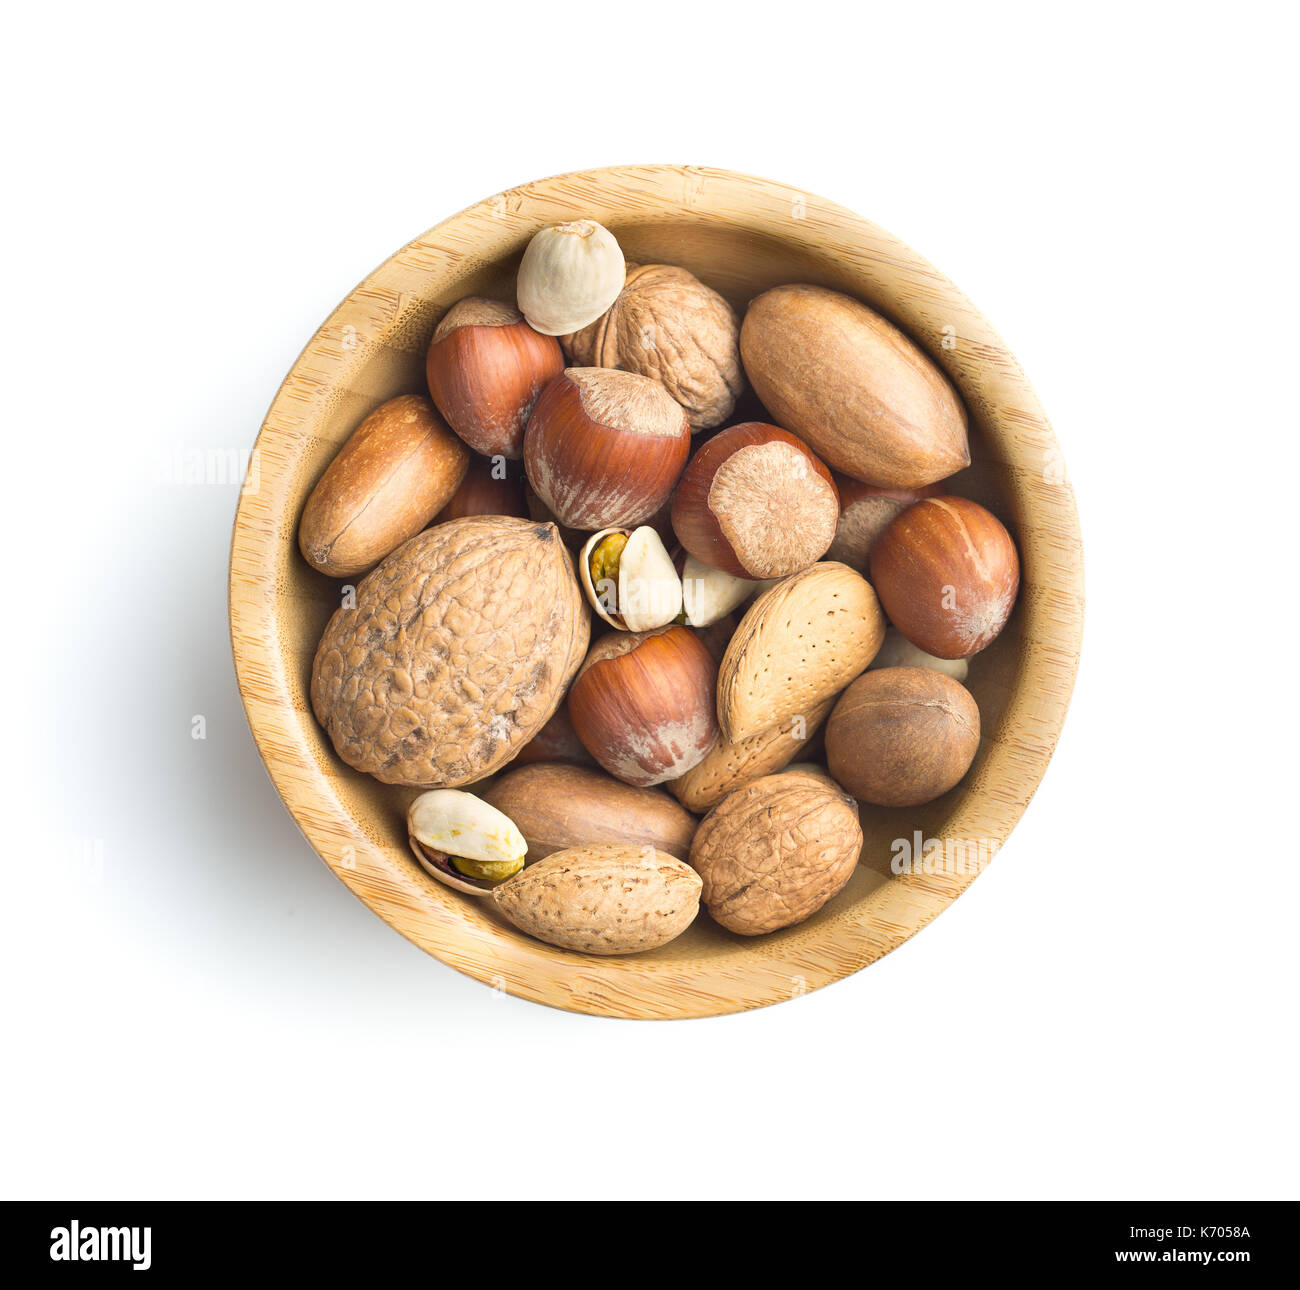 Different types of nuts in the nutshell  Hazelnuts, walnuts